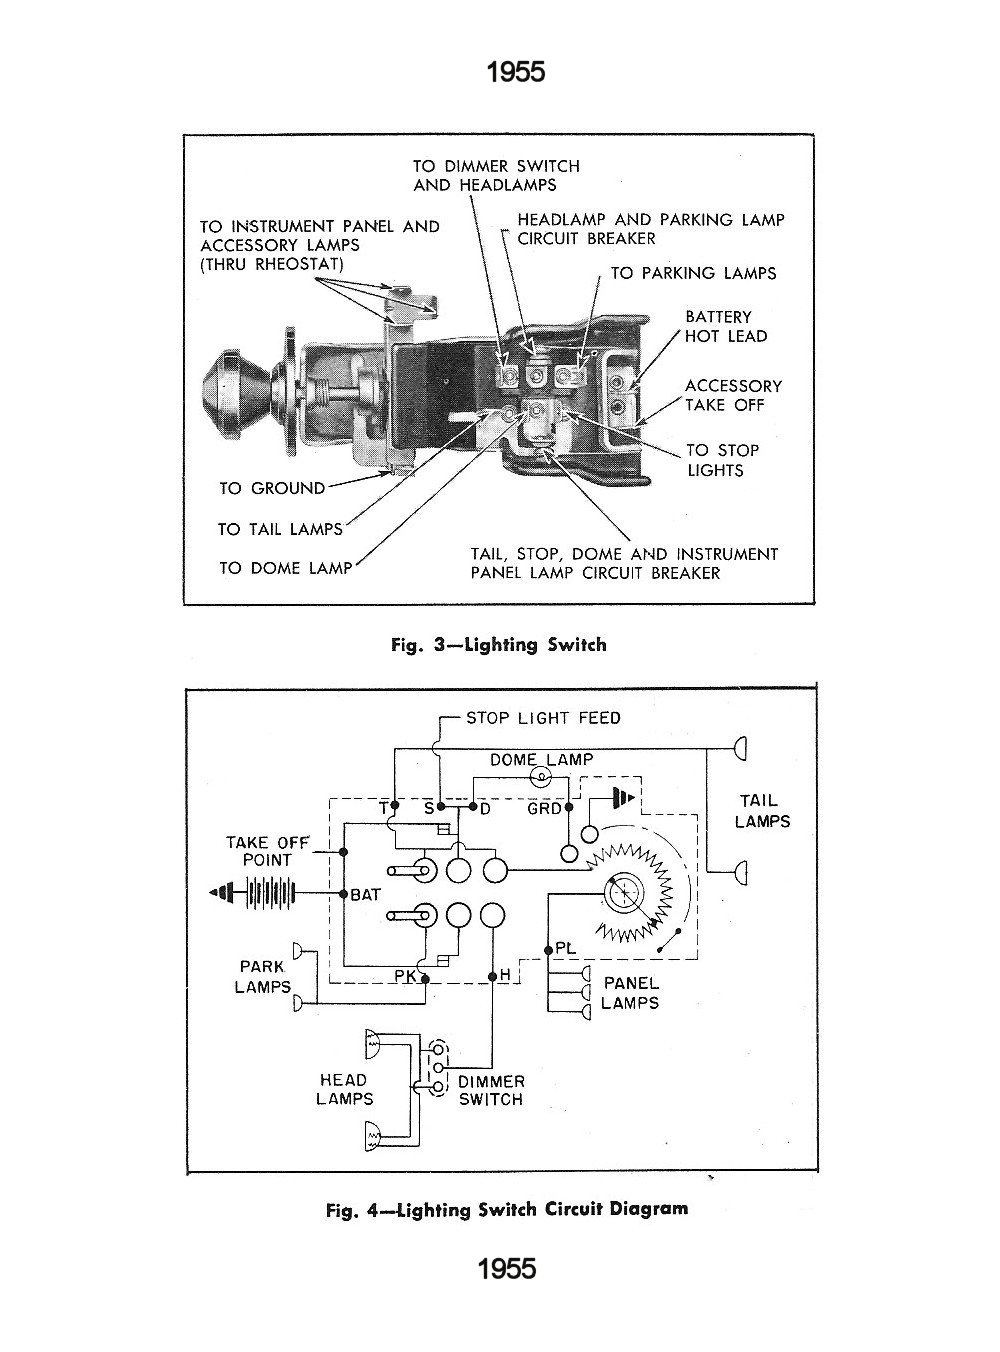 Painless Gm Headlight Switch Wiring Diagram | Wiring Diagram - Gm Headlight Switch Wiring Diagram